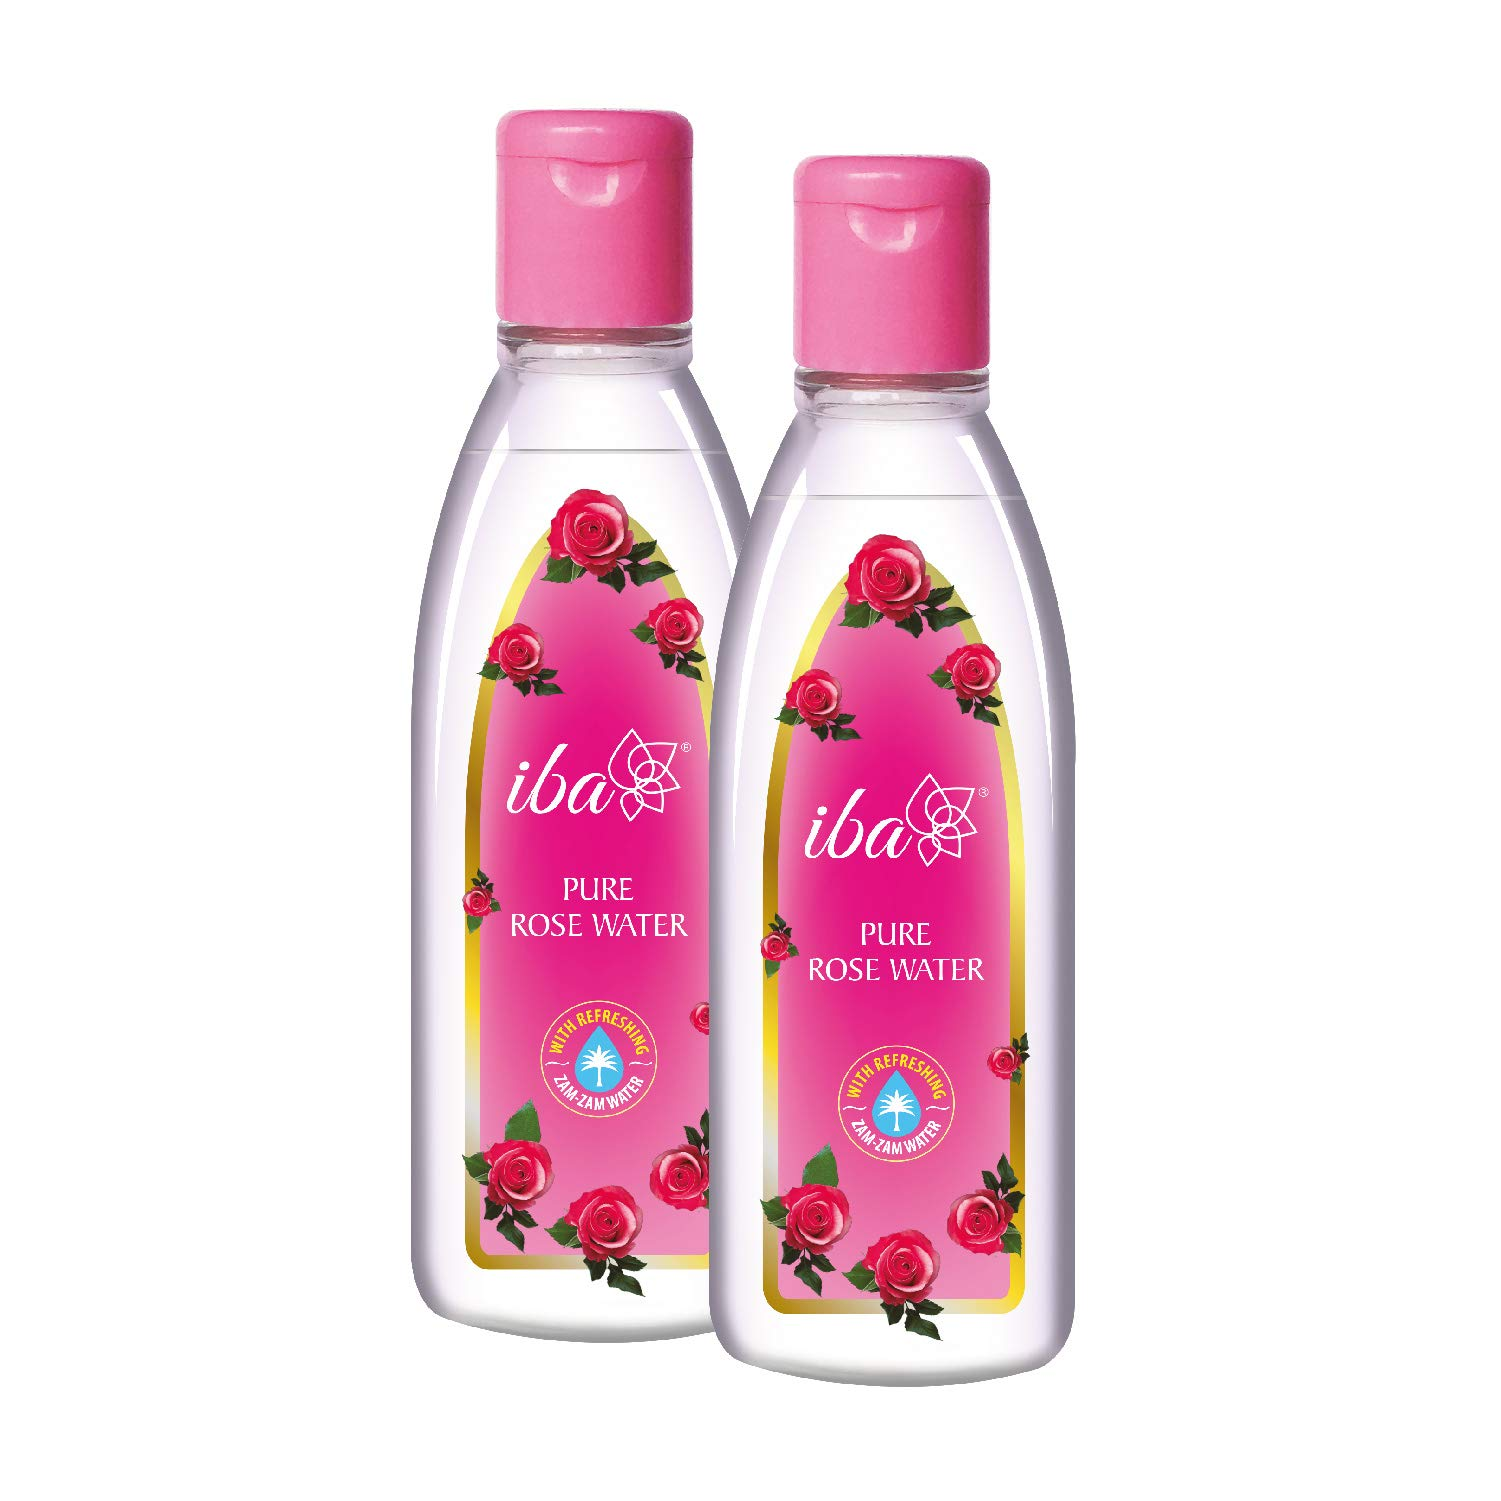 Iba Halal Care Pure Rose Water, 105 ml (Pack of 2)